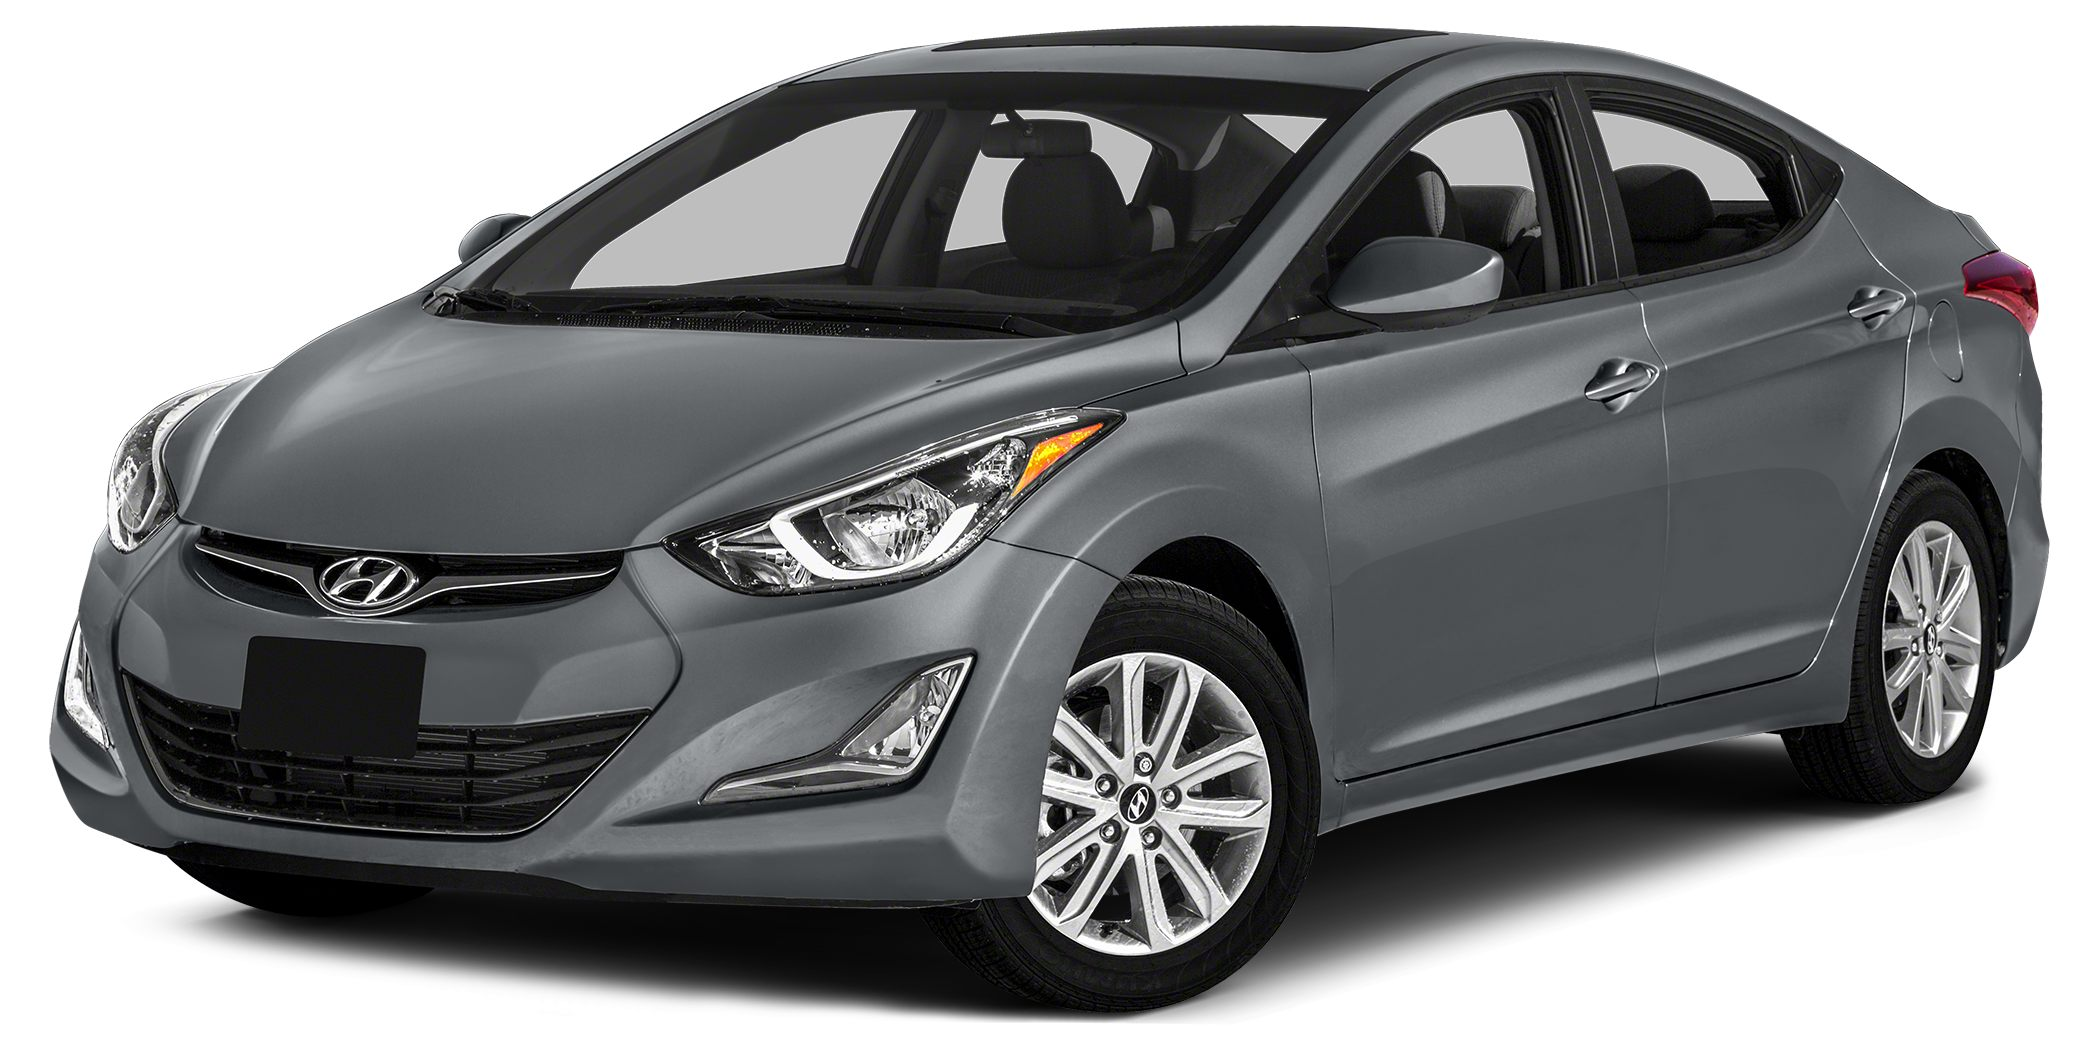 2014 Hyundai Elantra Sport Other features include Leather seats Bluetooth Power locks Power wi